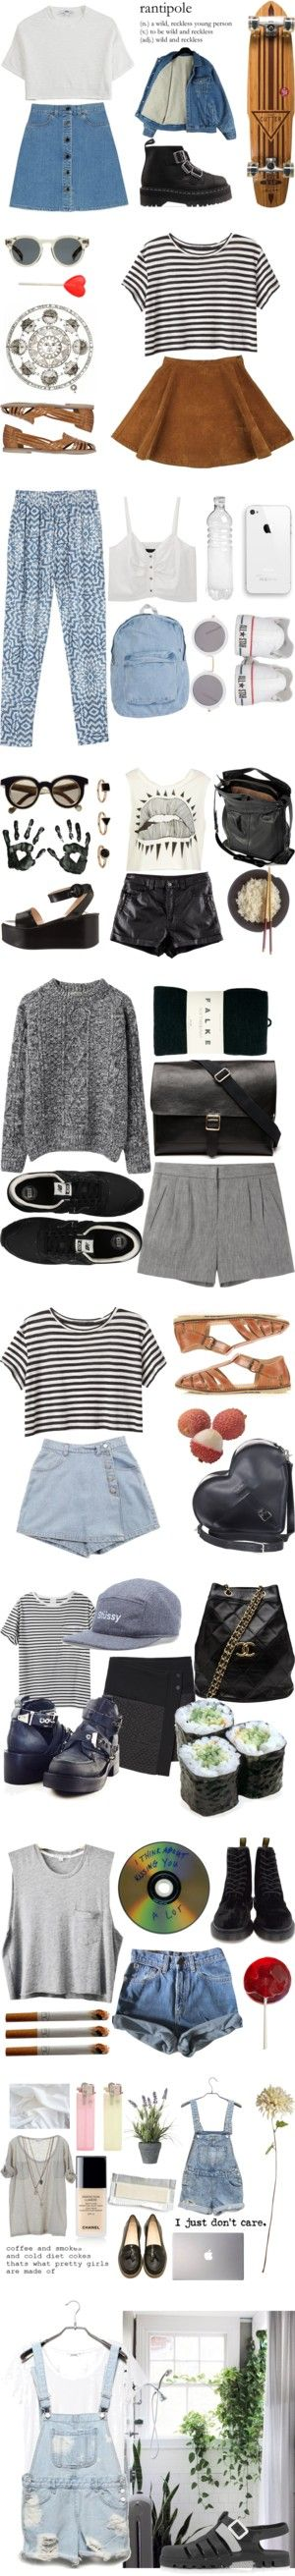 """Take a Walk on the Wild Side"" by natalieoffduty ❤ liked on Polyvore"